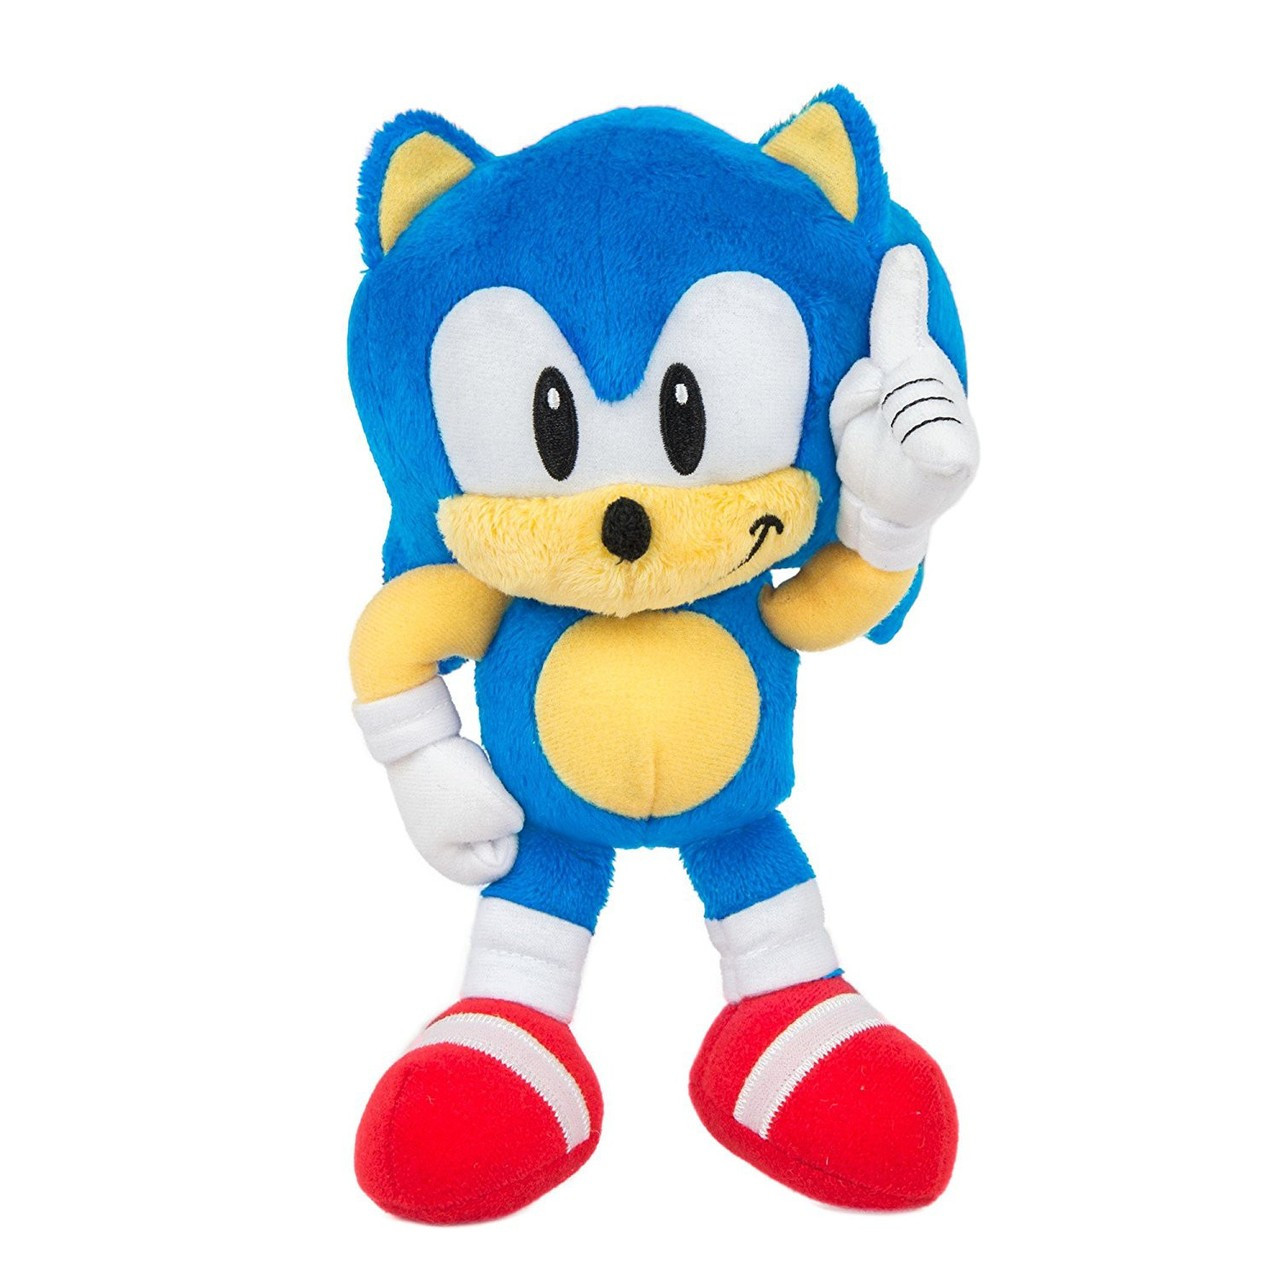 Tomy Deluxe Sonic The Hedgehog 15-Inch Plush - Toys ... |Sonic The Hedgehog Plush Toys